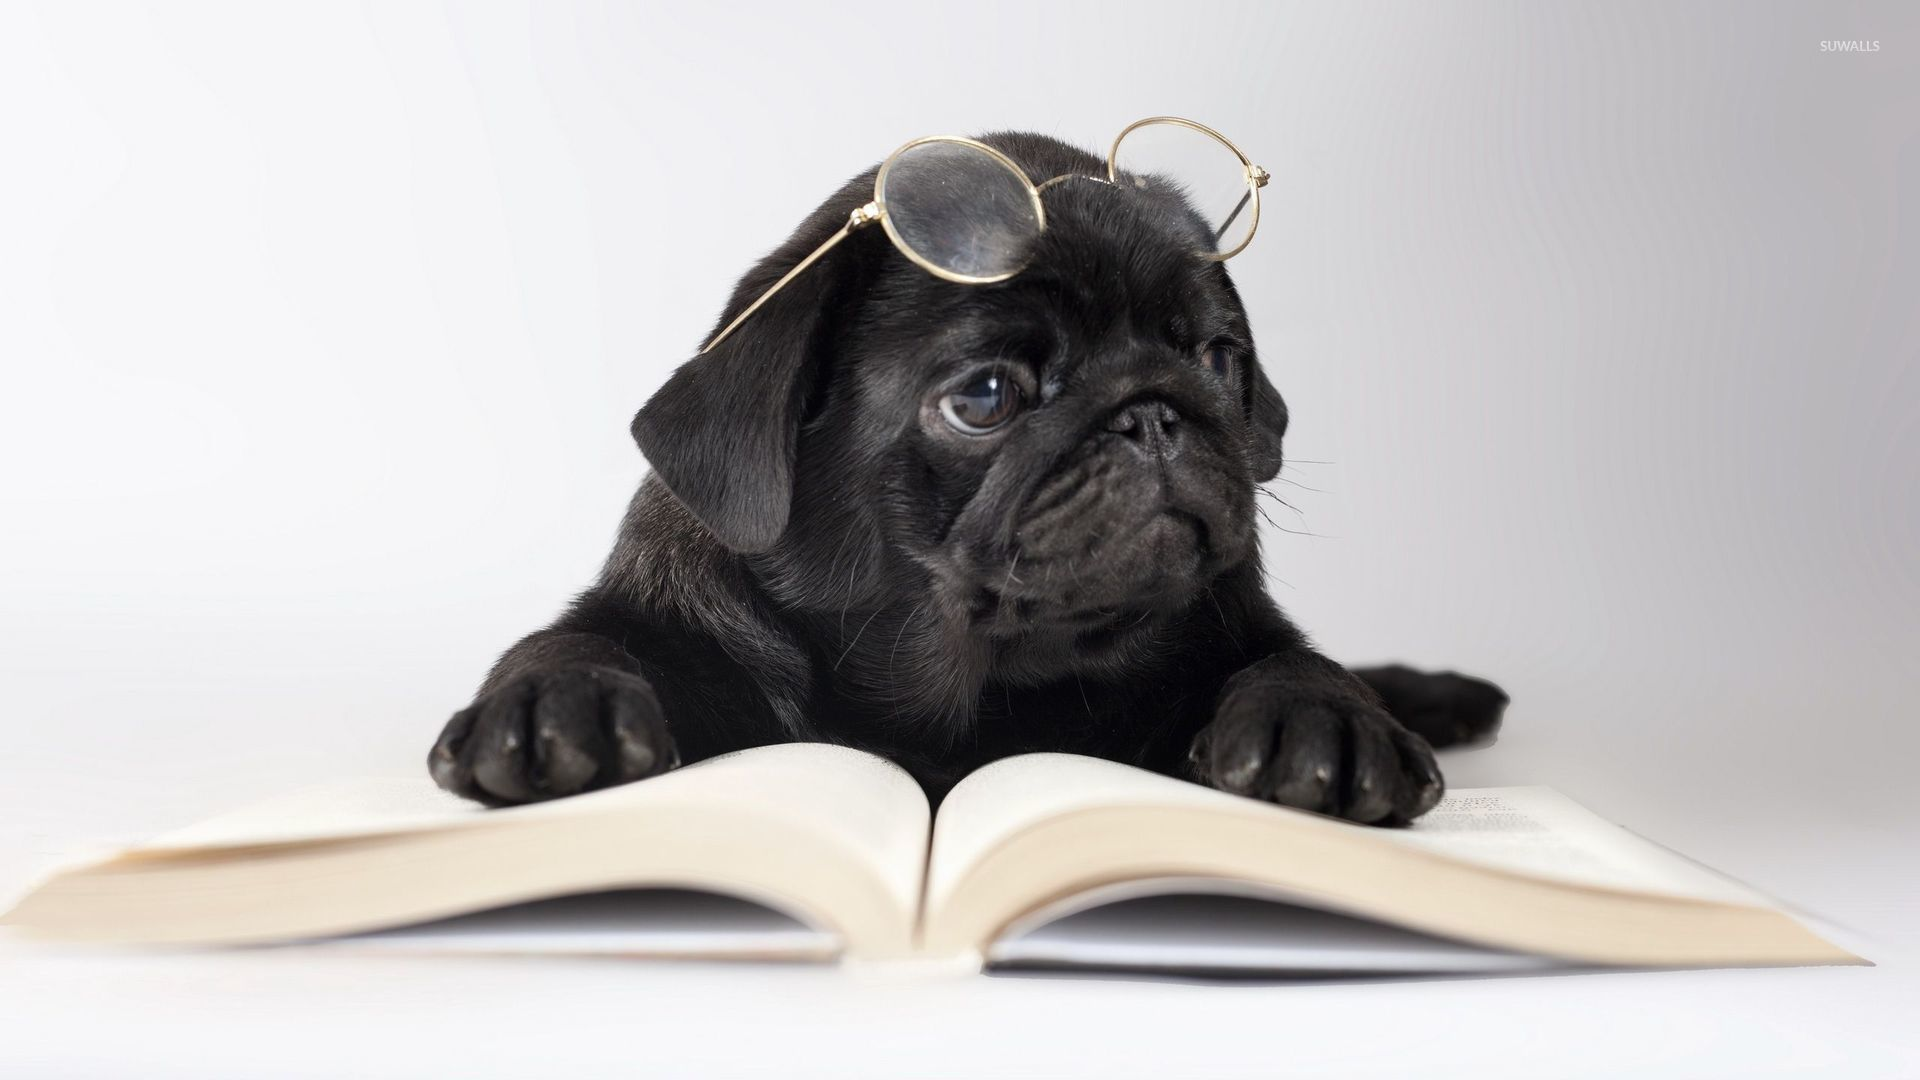 Cute Puppy Pics Wallpaper Black Pug With Glasses Wallpaper Animal Wallpapers 50637